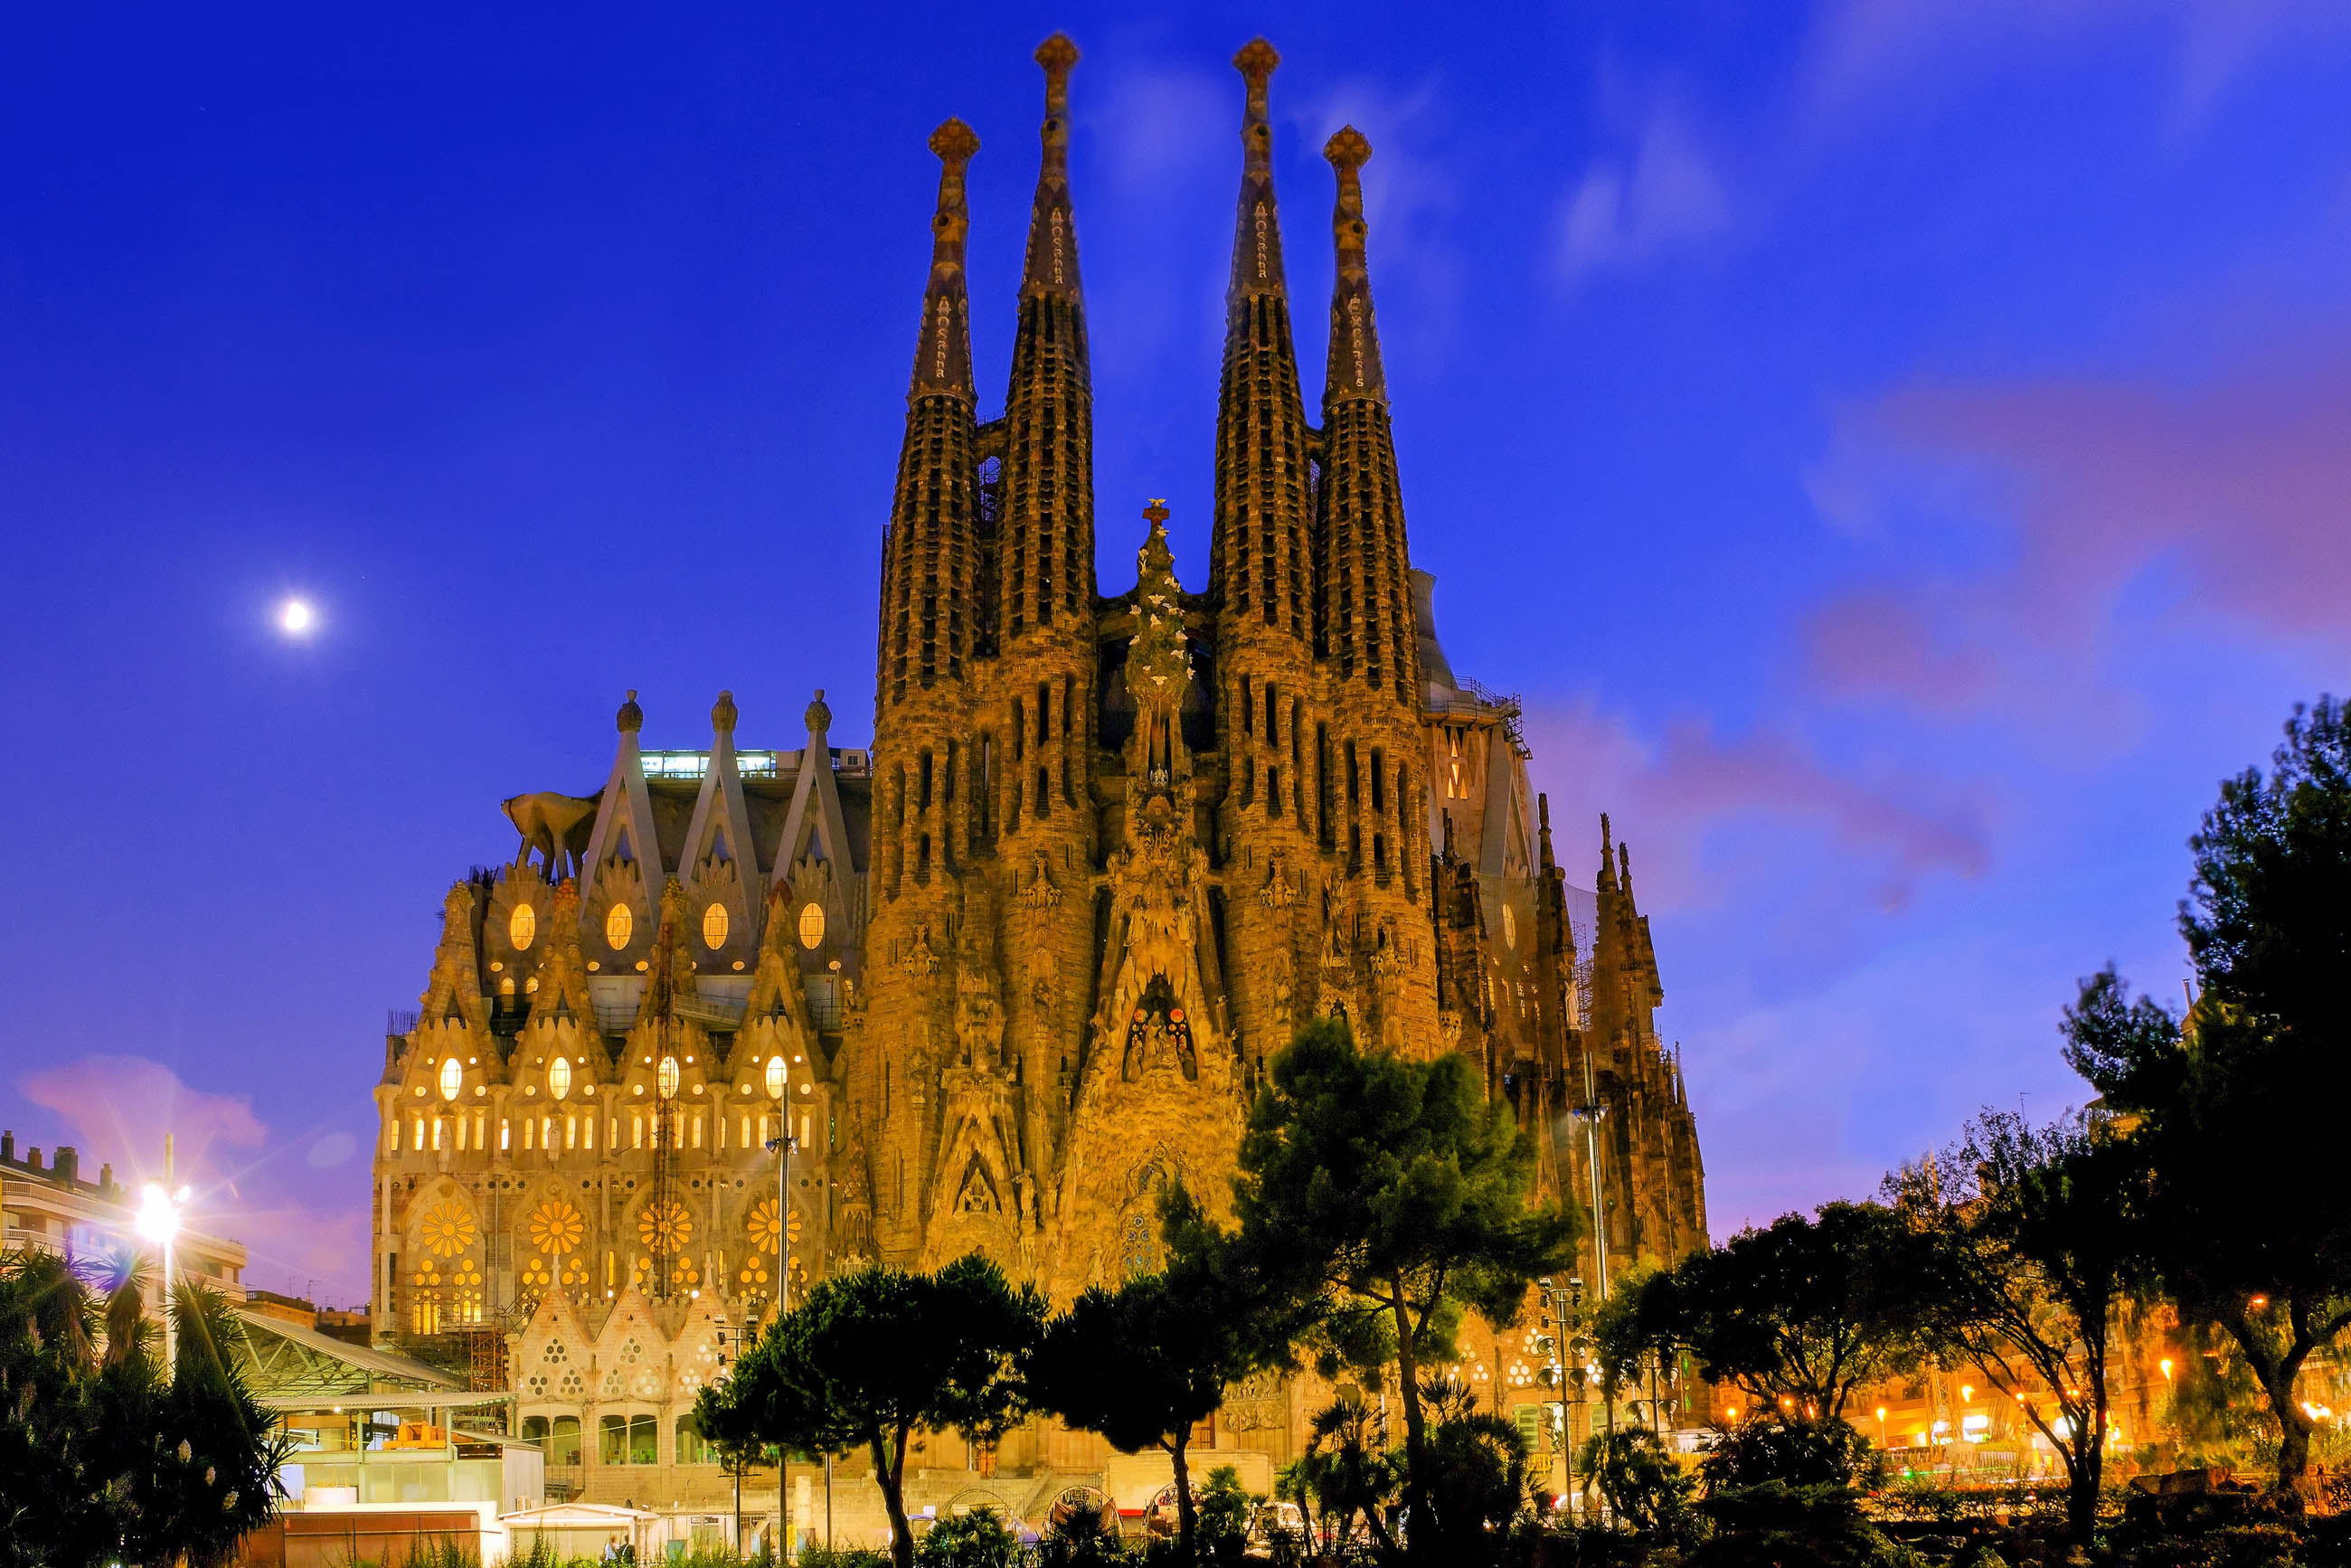 Bilder sagrada familia in barcelona spanien franks for Barcelona famila